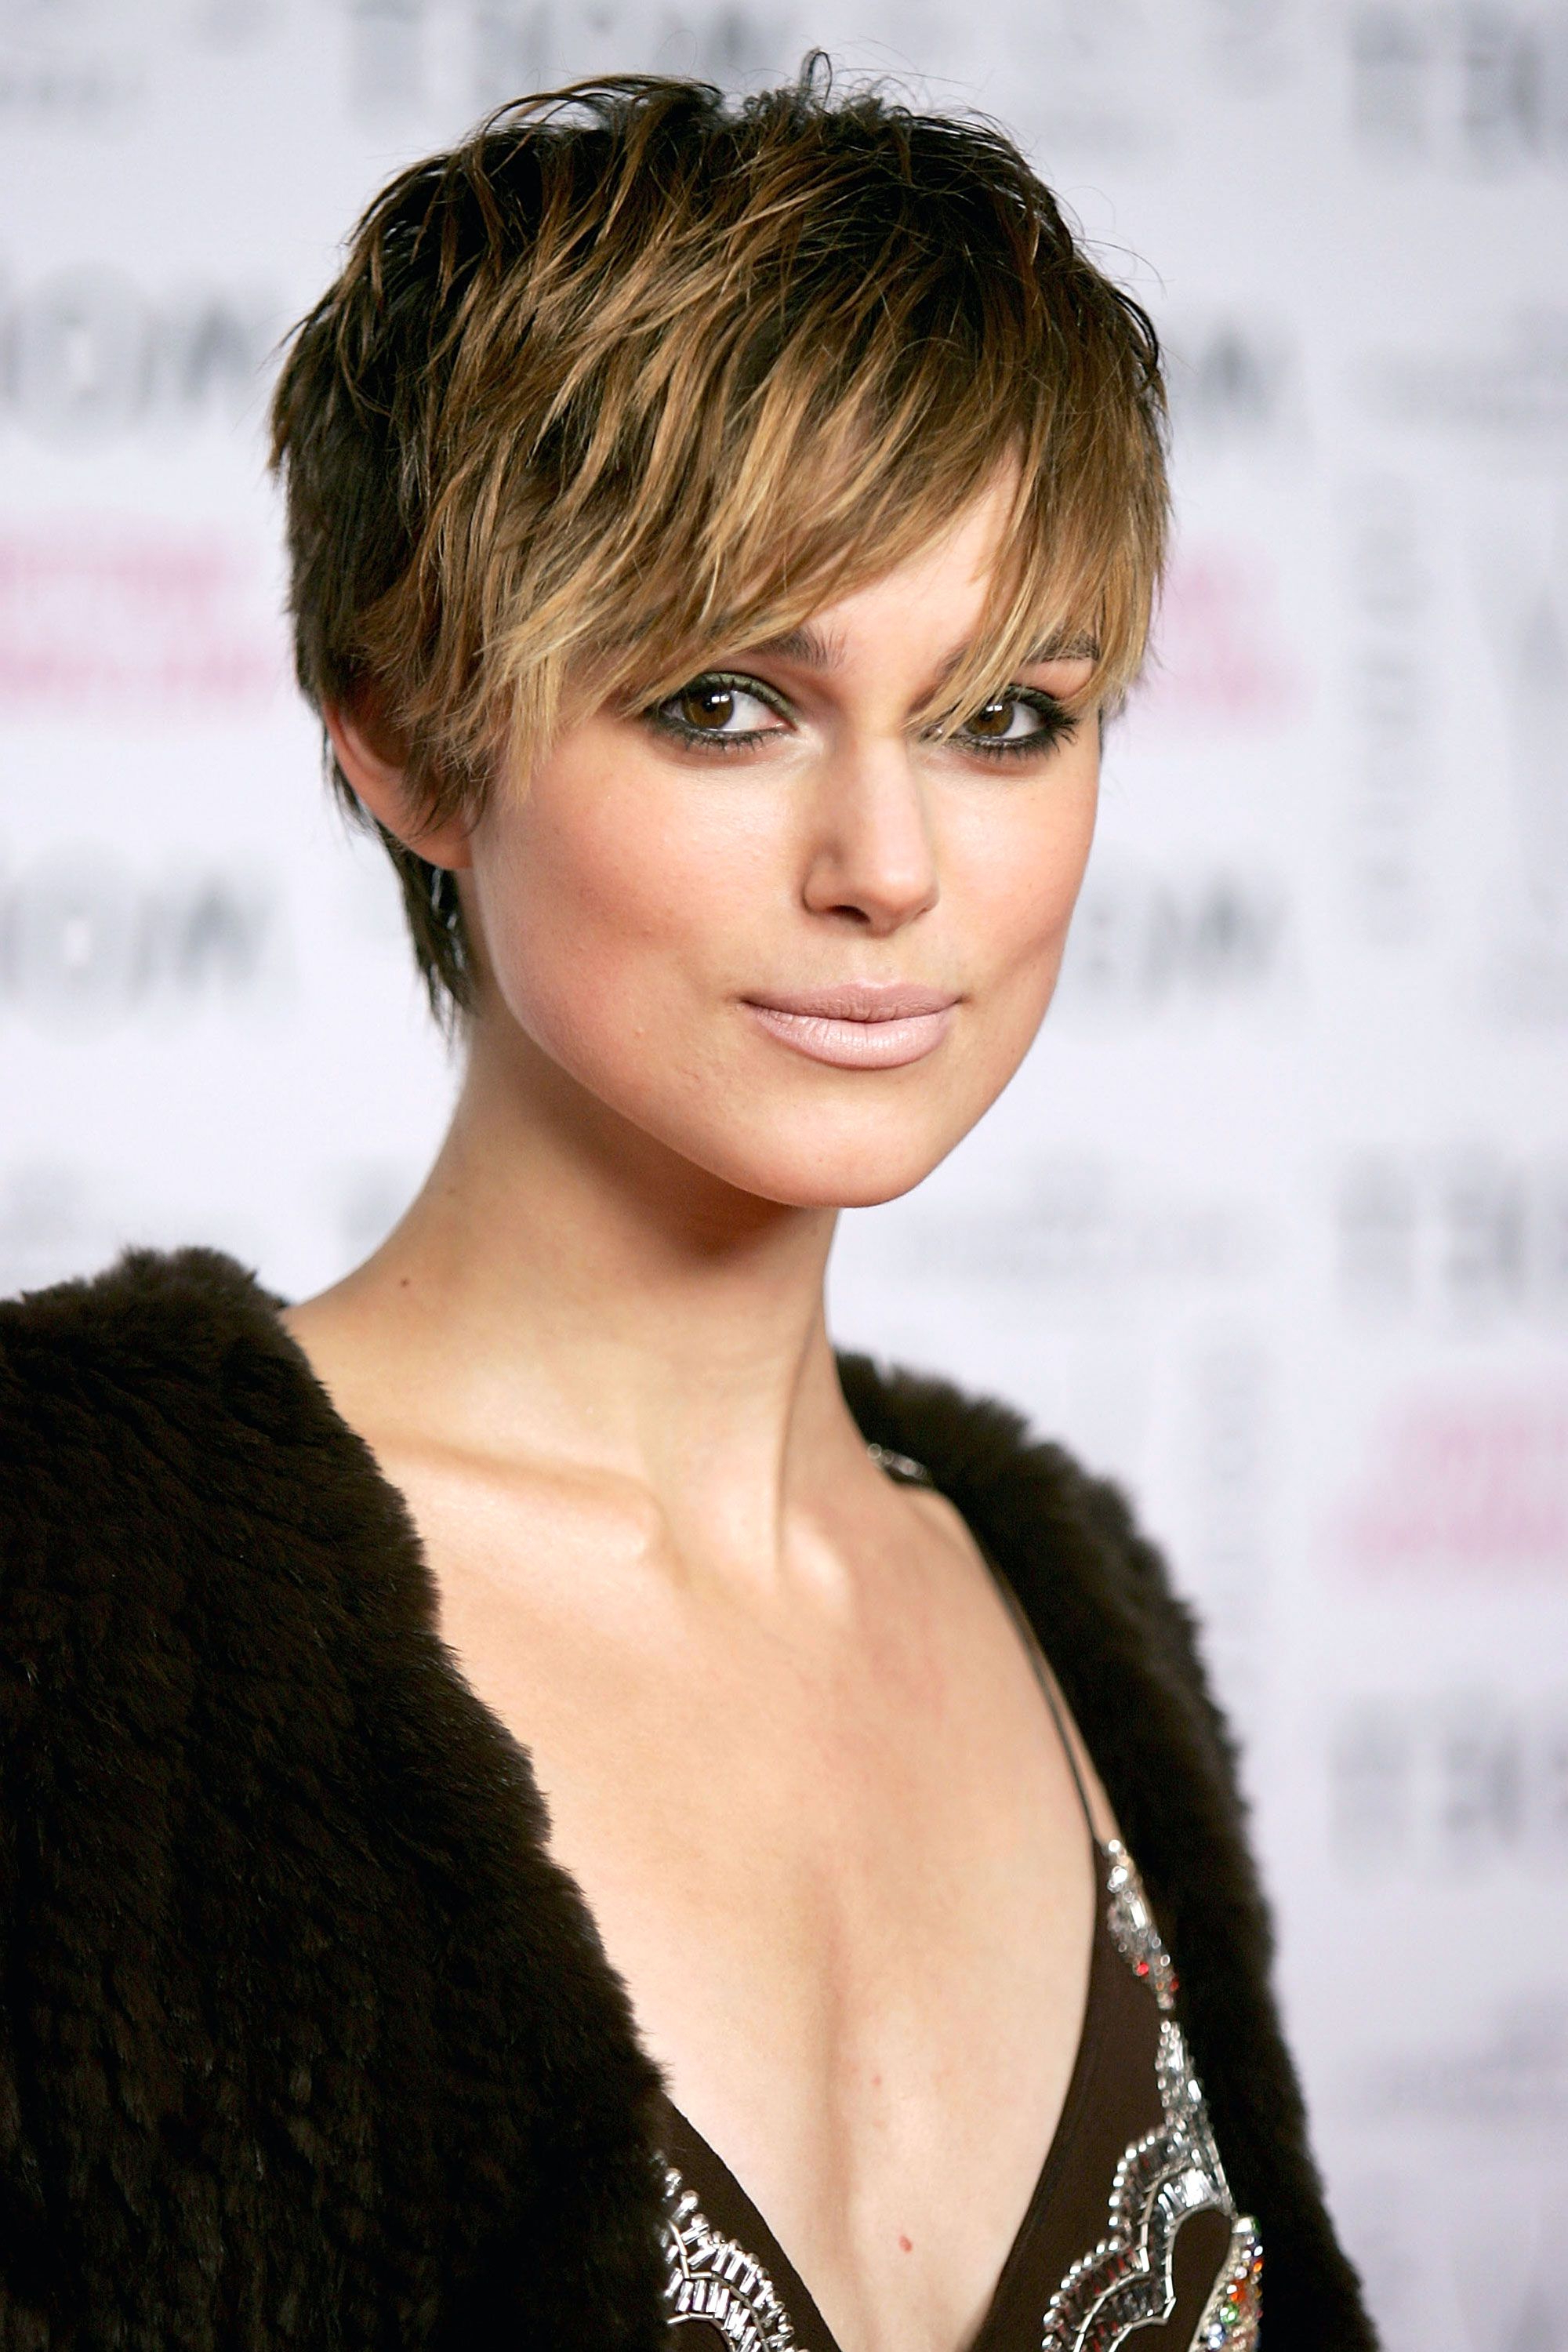 50+ Pixie Cuts We Love For 2018 – Short Pixie Hairstyles From Inside Short Blonde Hair With Bangs (View 23 of 25)